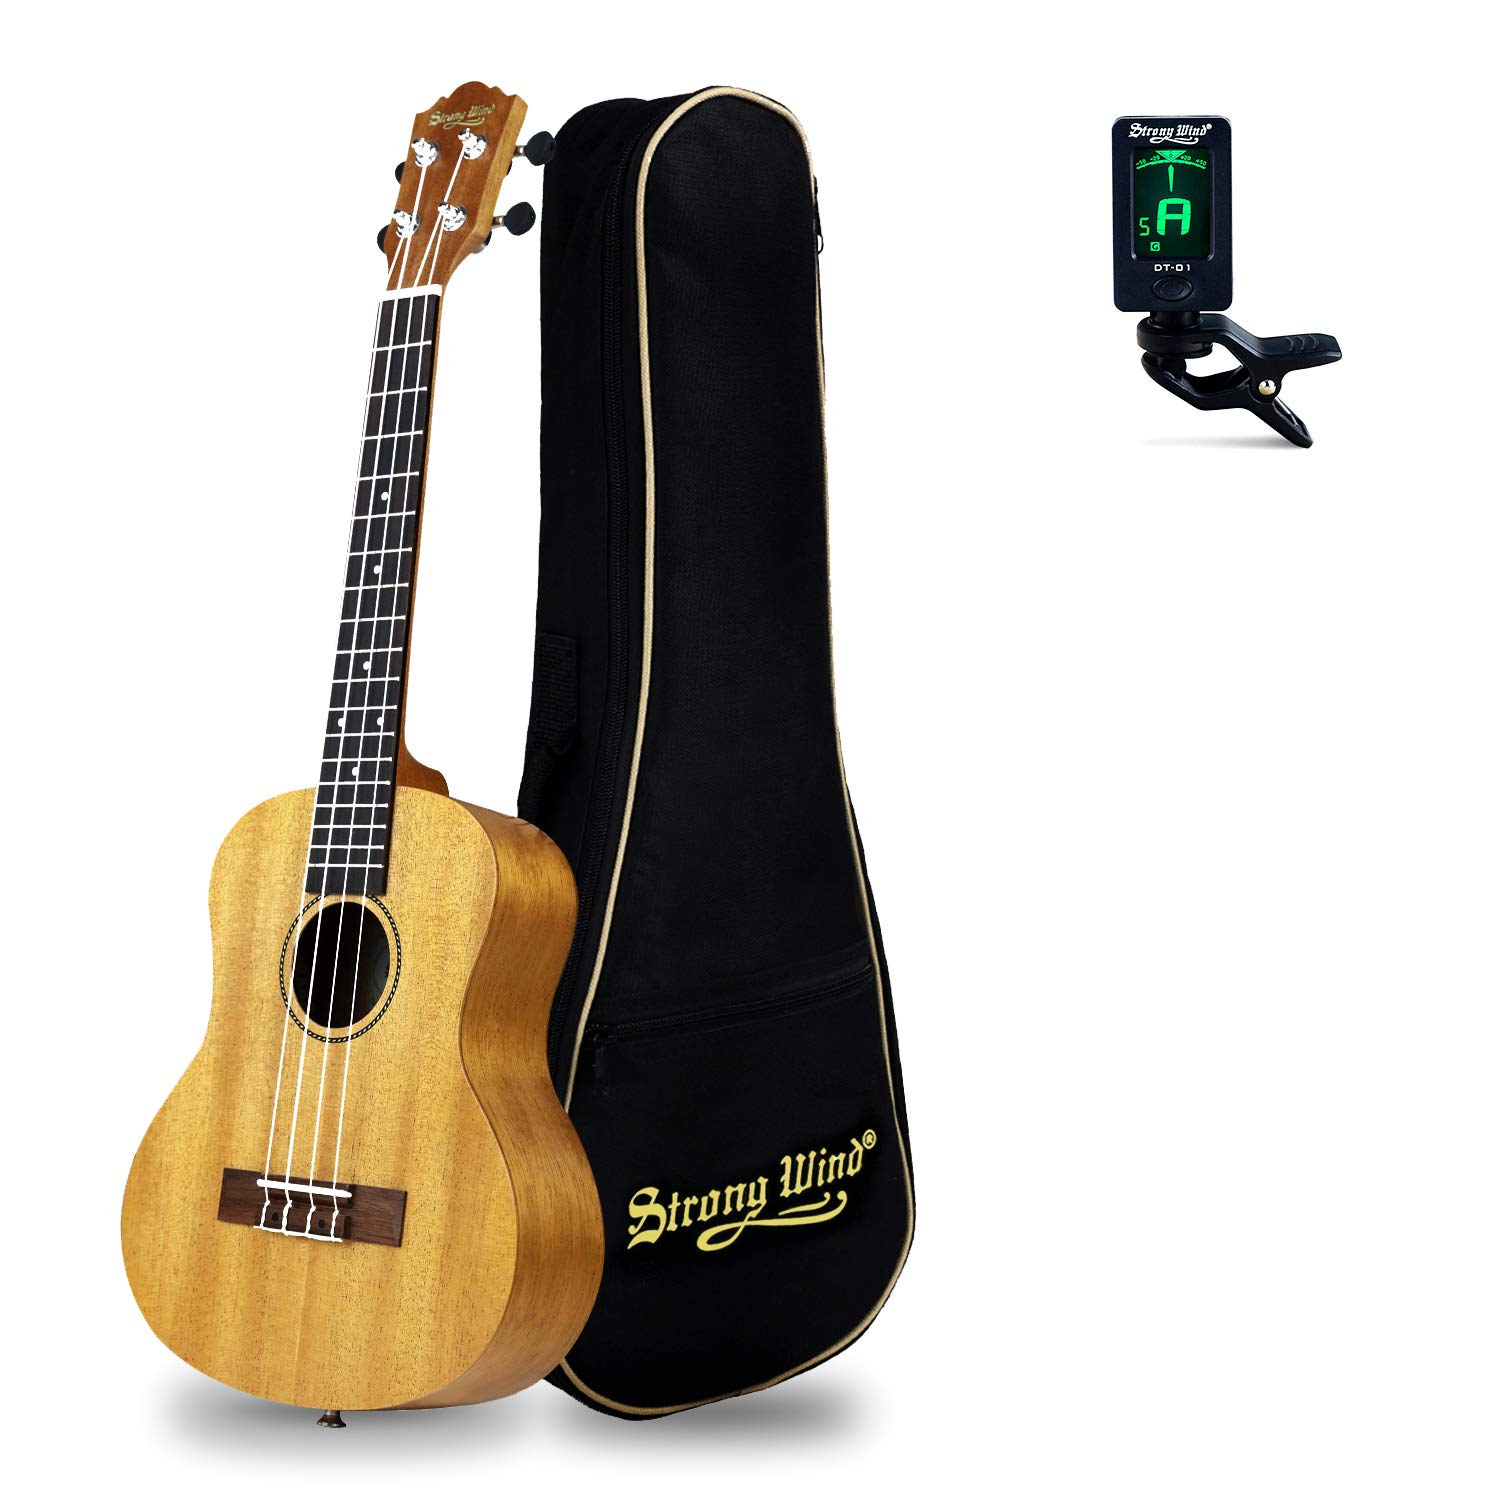 26inTenor Ukulele Start Kit for Adults, Strong Wind Mahogany Body Hawaiian Ukeleles for Beginners, Professional Music Instrument Beginners Kit with Gig Bag, Tuner